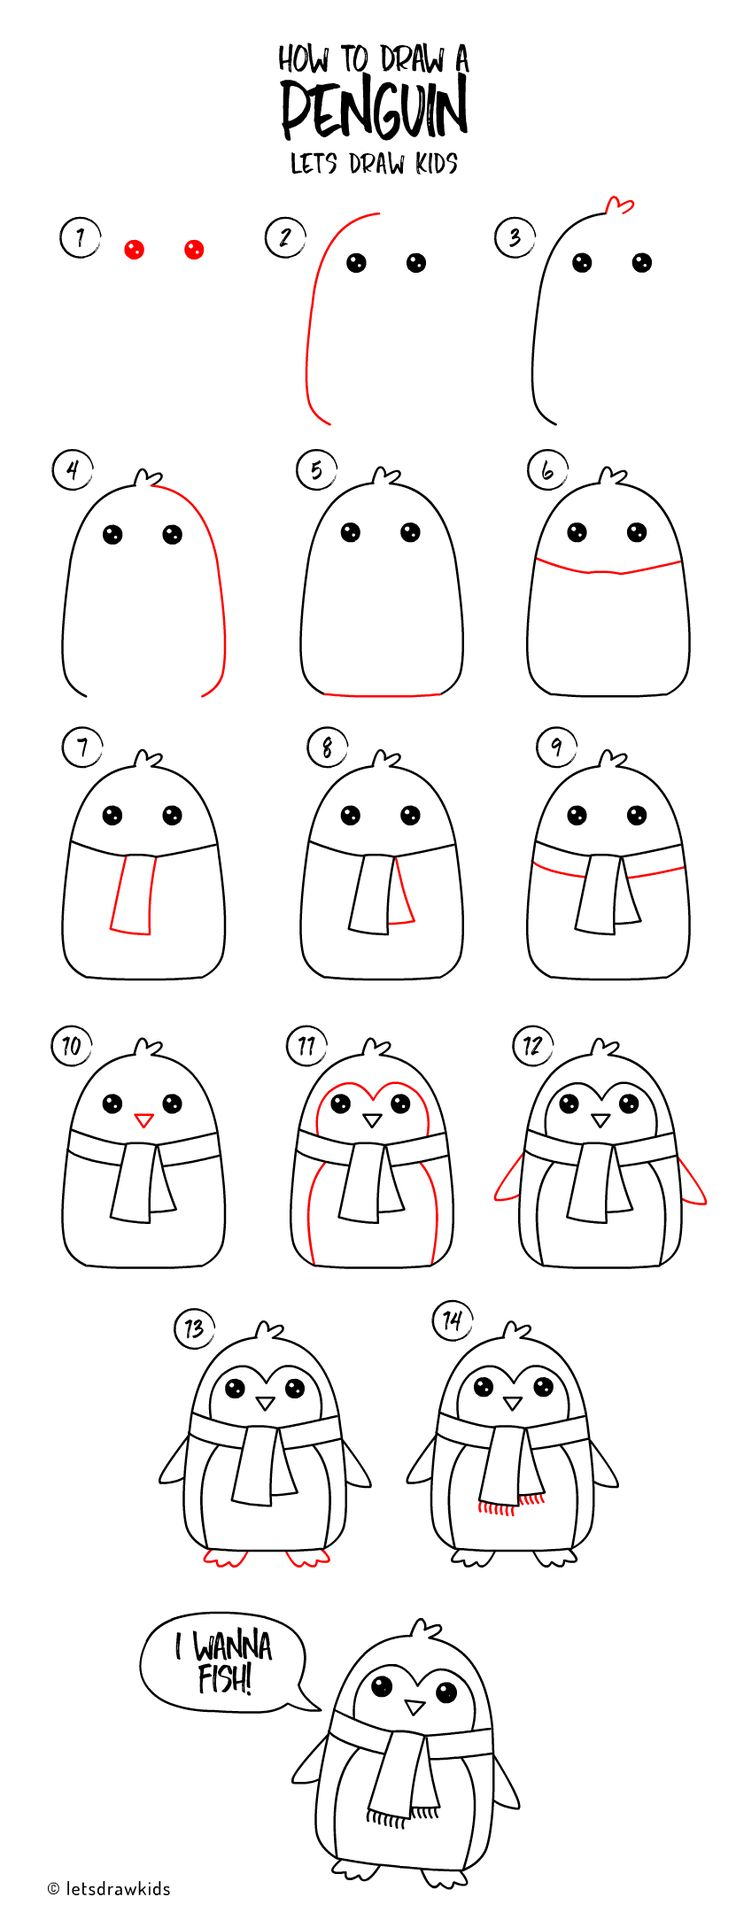 How To Draw A Penguin Easy Drawing, Step By Step, Perfect For Kids